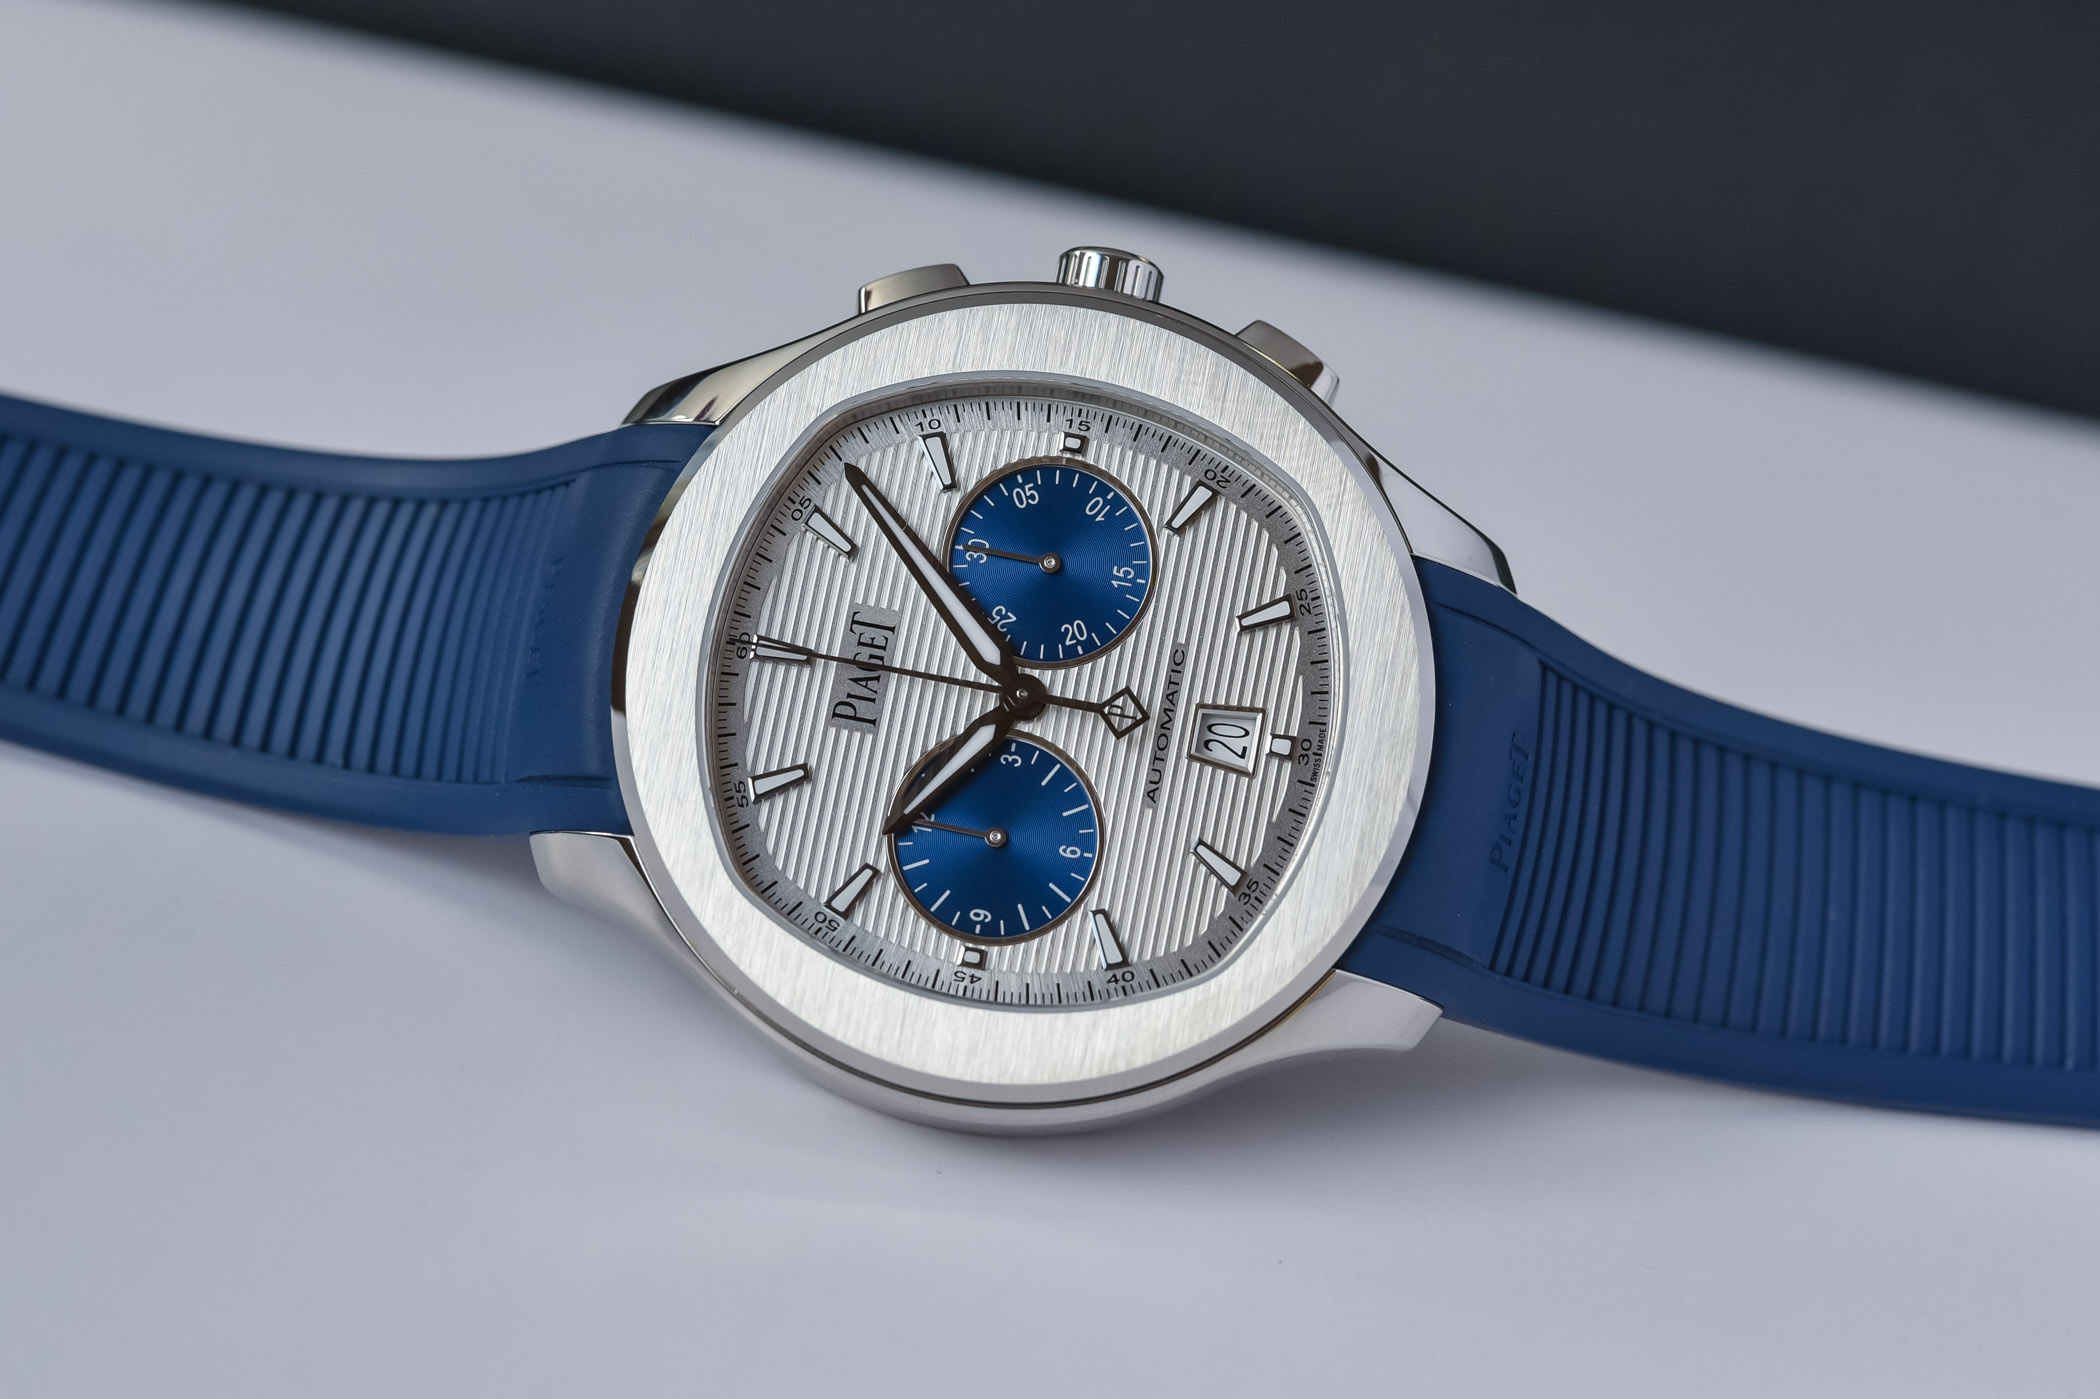 Piaget-Polo-Blue-Panda-Automatic-Chronograph-42mm-Rubber-Strap-G0A46013-hands-on-6.jpg